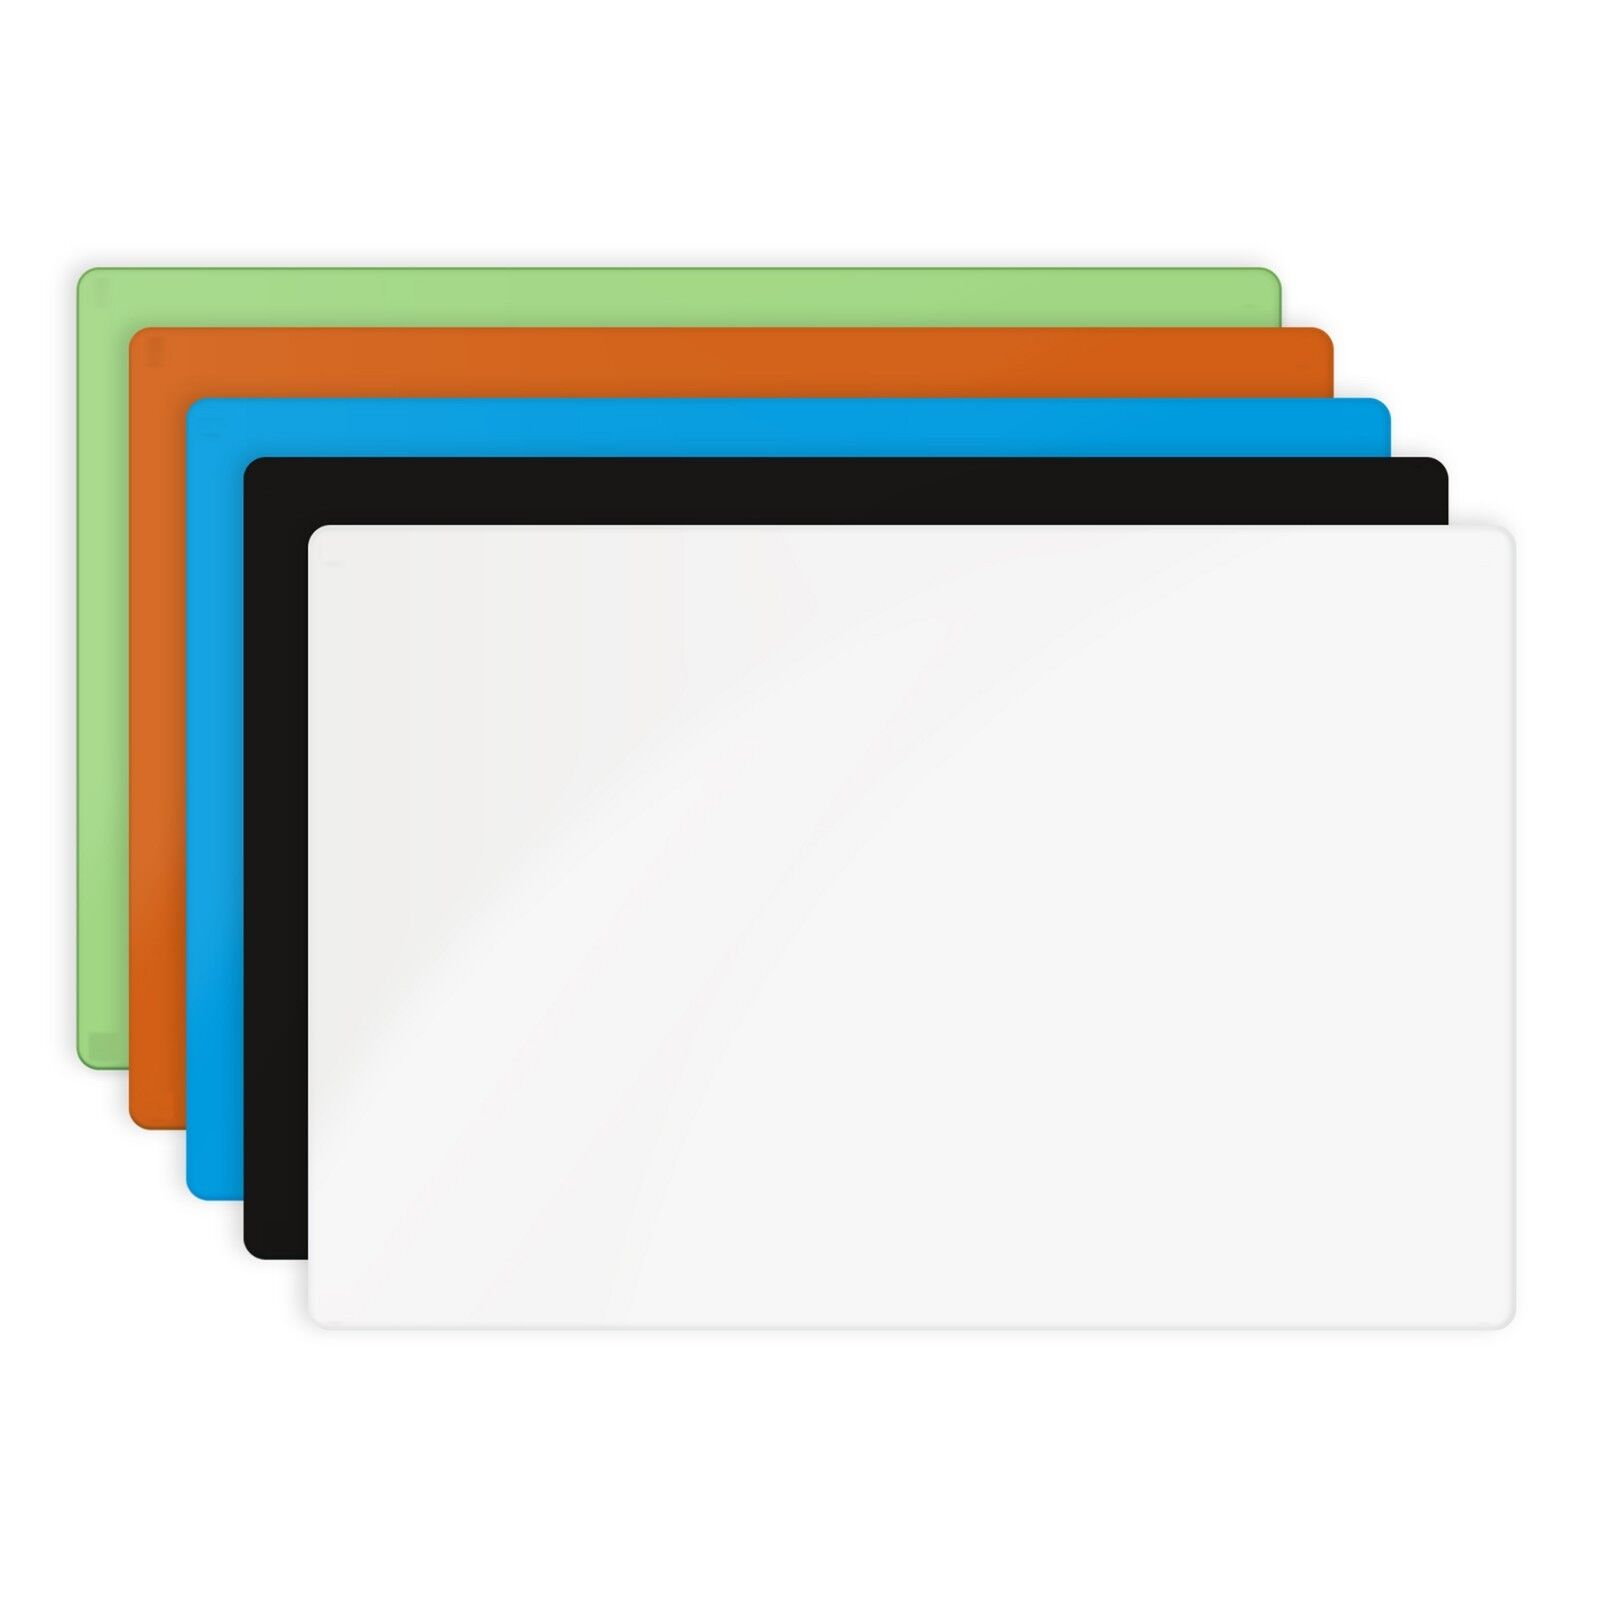 Frameless Magnetic Glass Dry-Erase Board Eased Corners by Fa